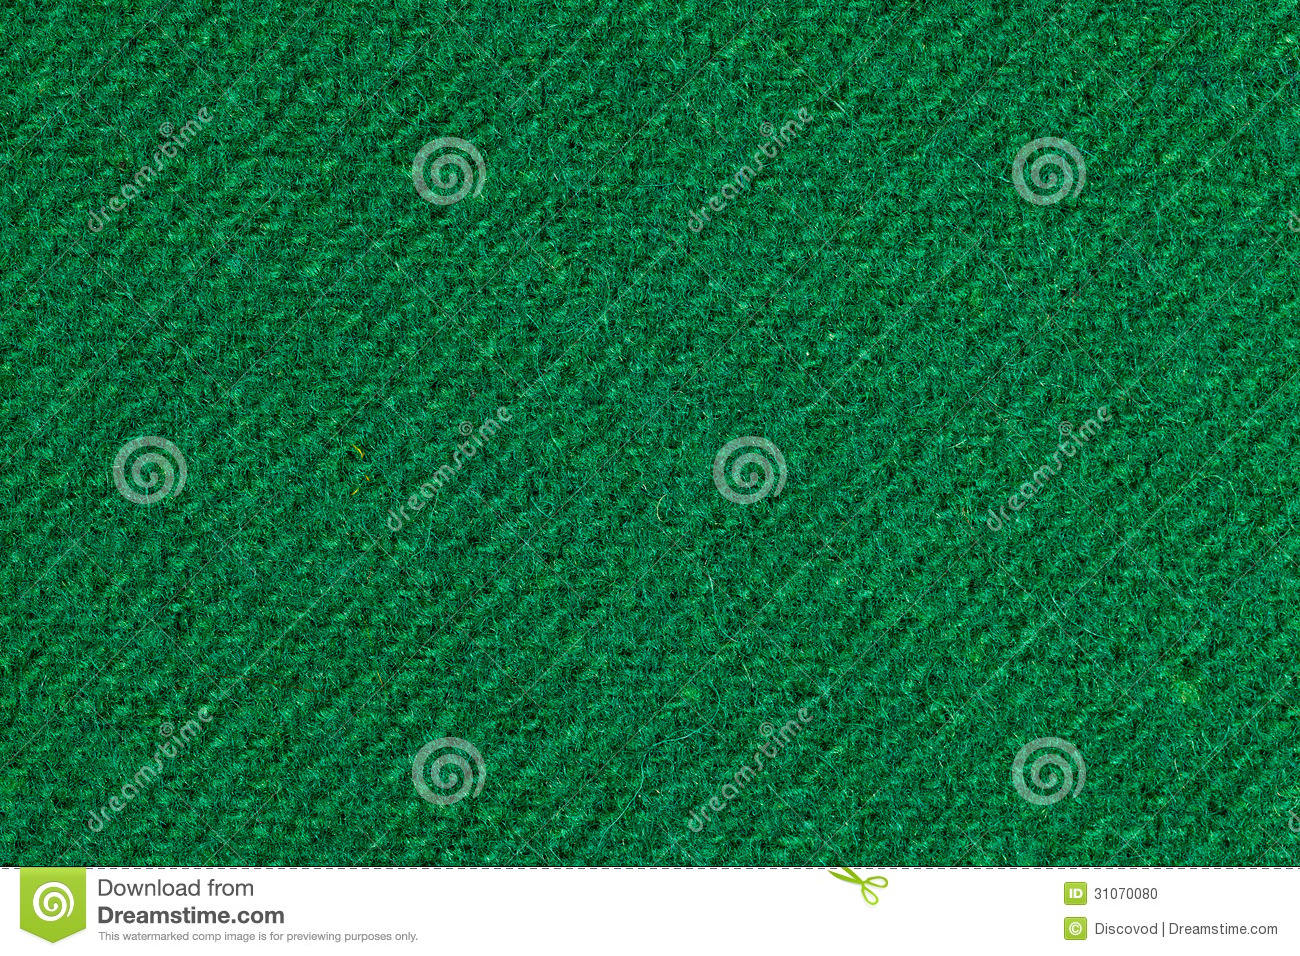 Green table felt poker table felt in green